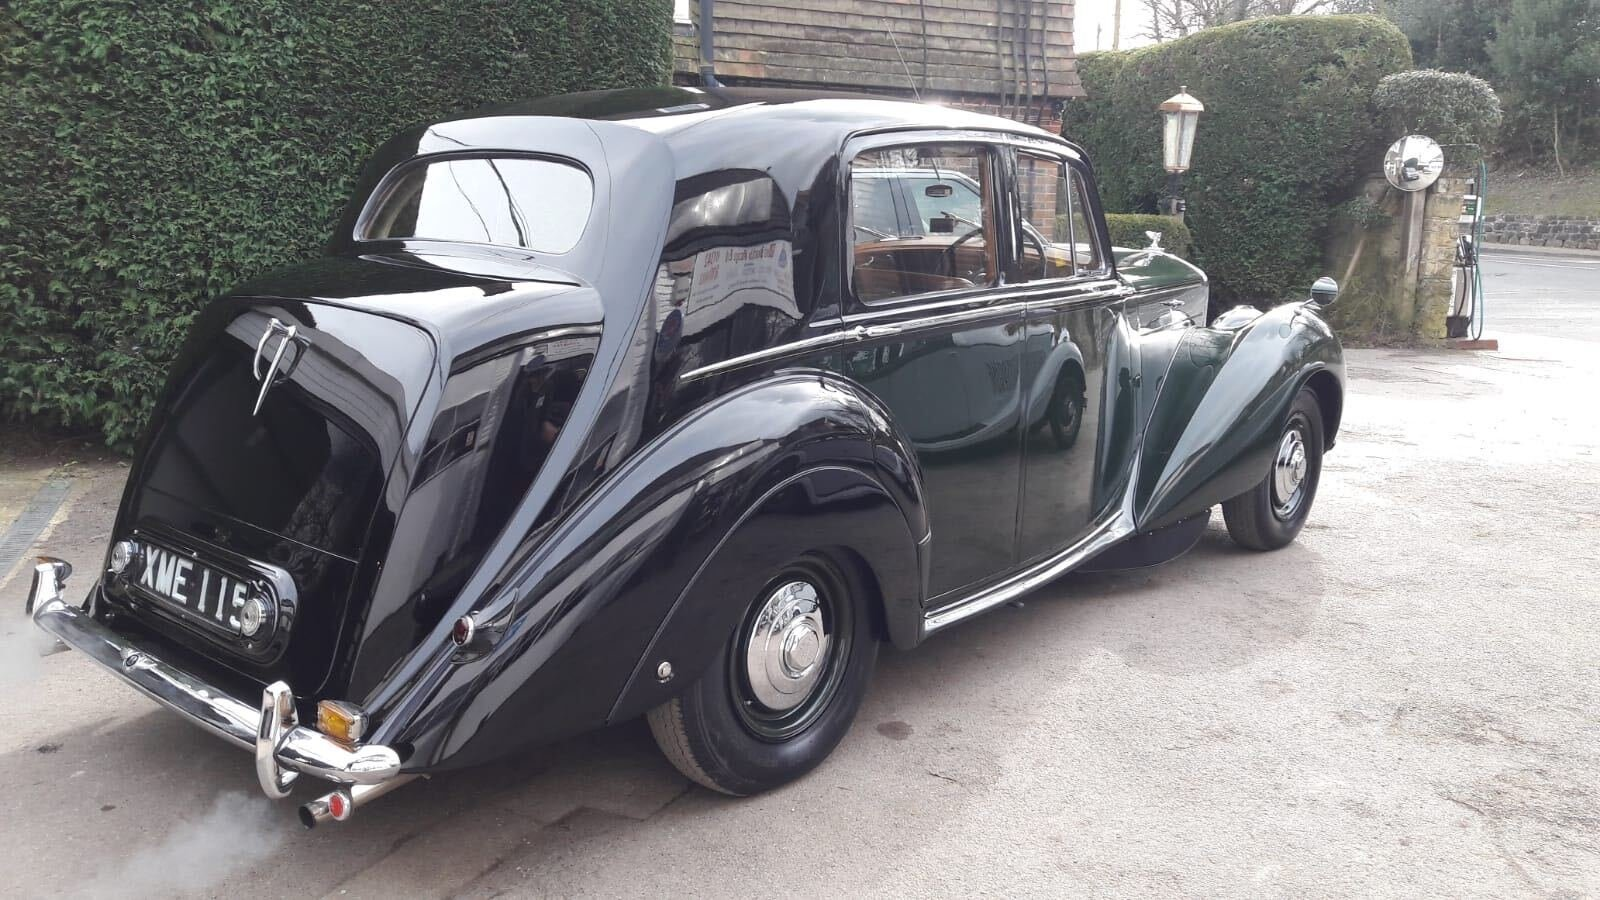 1952 Bentley 4.5 litre Mk v1 For Sale (picture 2 of 6)